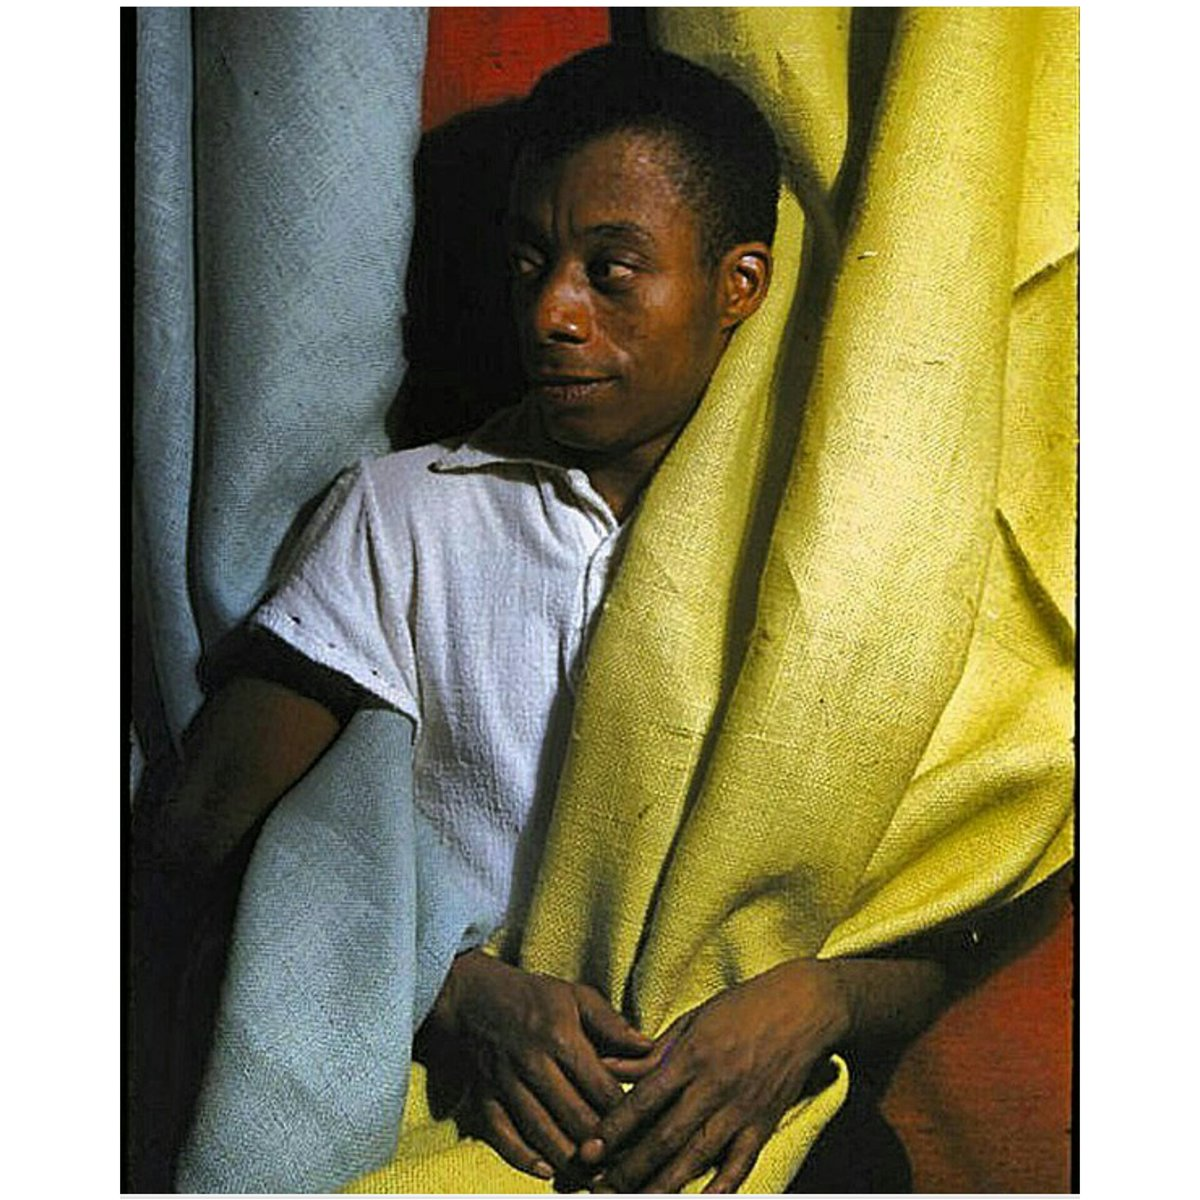 """""""The place in which I'll fit will not exist until I make it"""" - Happy Birthday James Baldwin. #ThankYou https://t.co/5inNxQjHUm"""